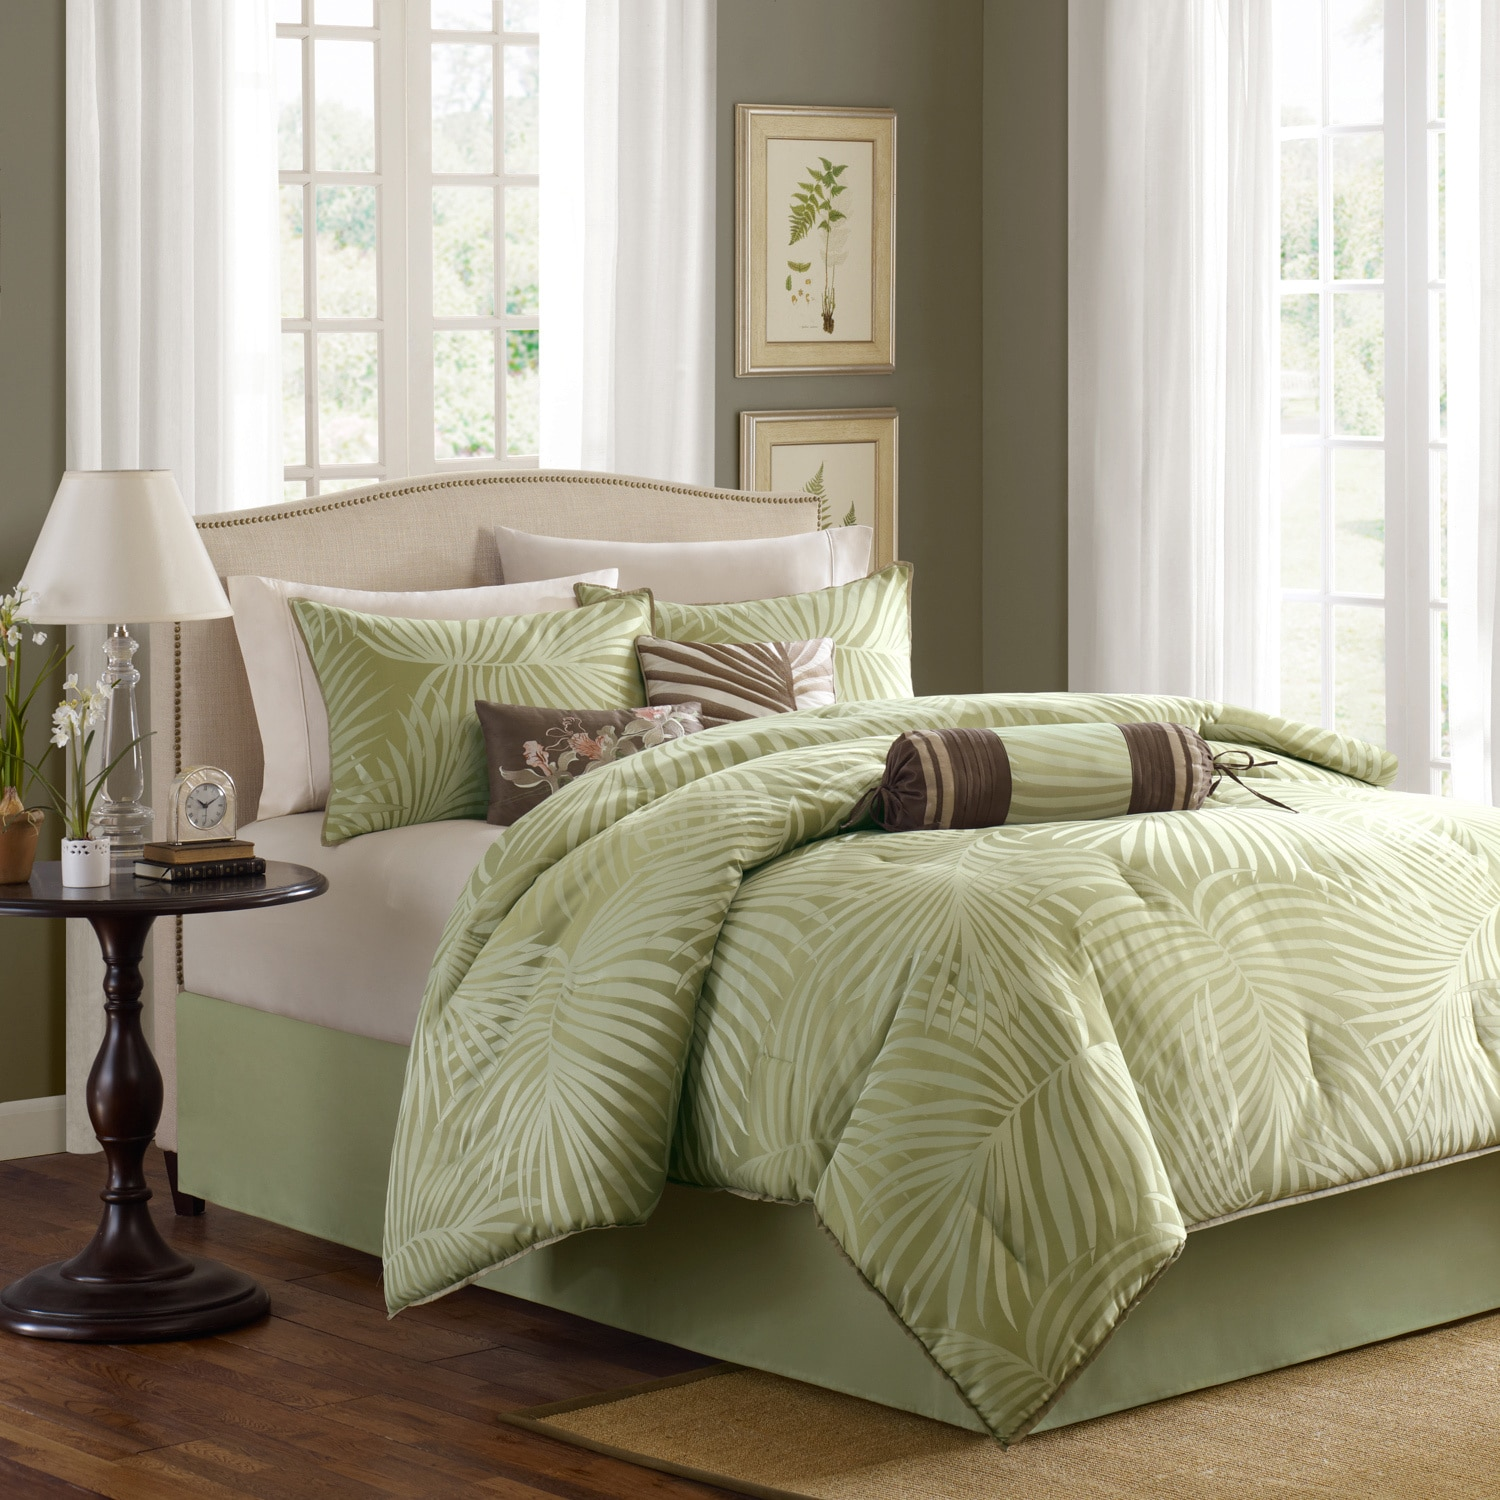 bed comforterset abode grey linen in humble sage by greysage champagne tomasini set comforter collection